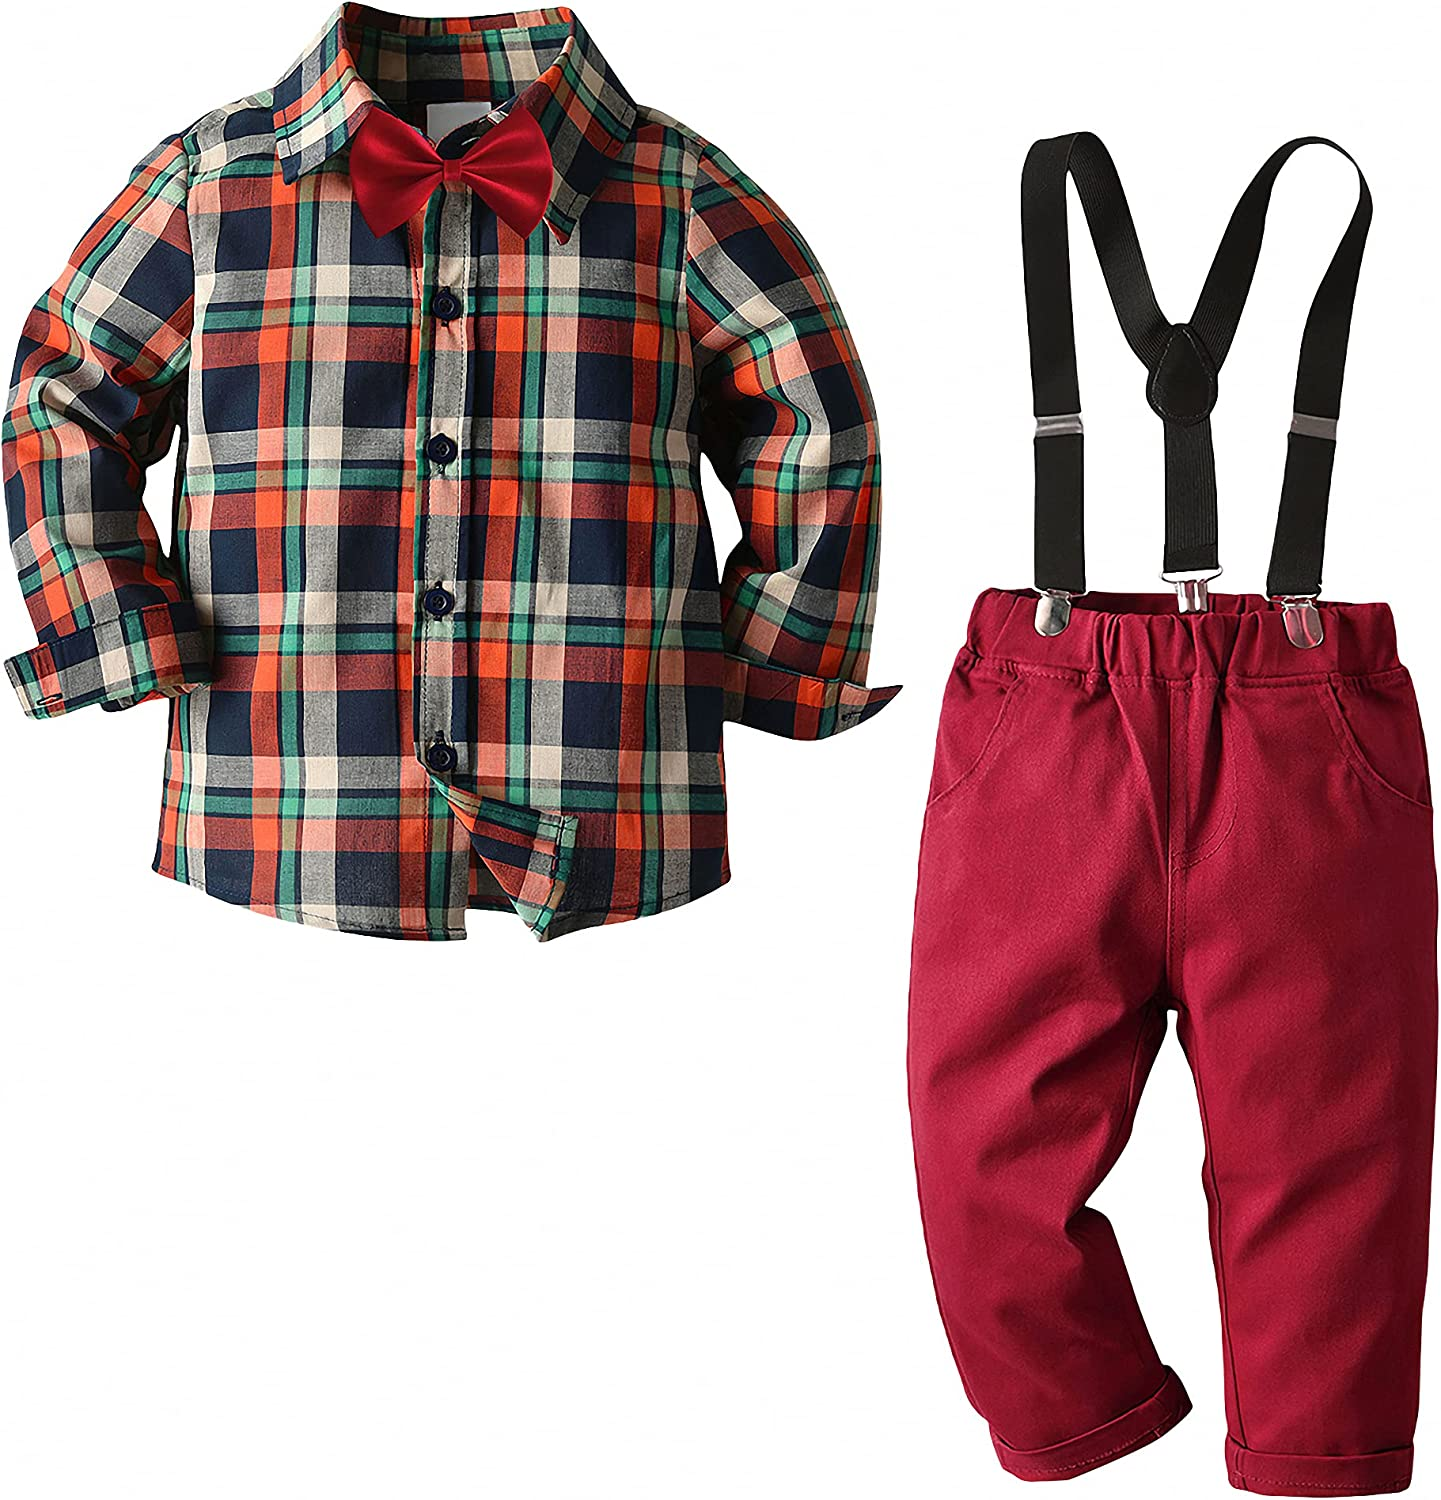 Nwada Boys Clothing Sets Max 89% OFF Kids Party Suits Dealing full price reduction Bow Sleeve Long 4PCS T